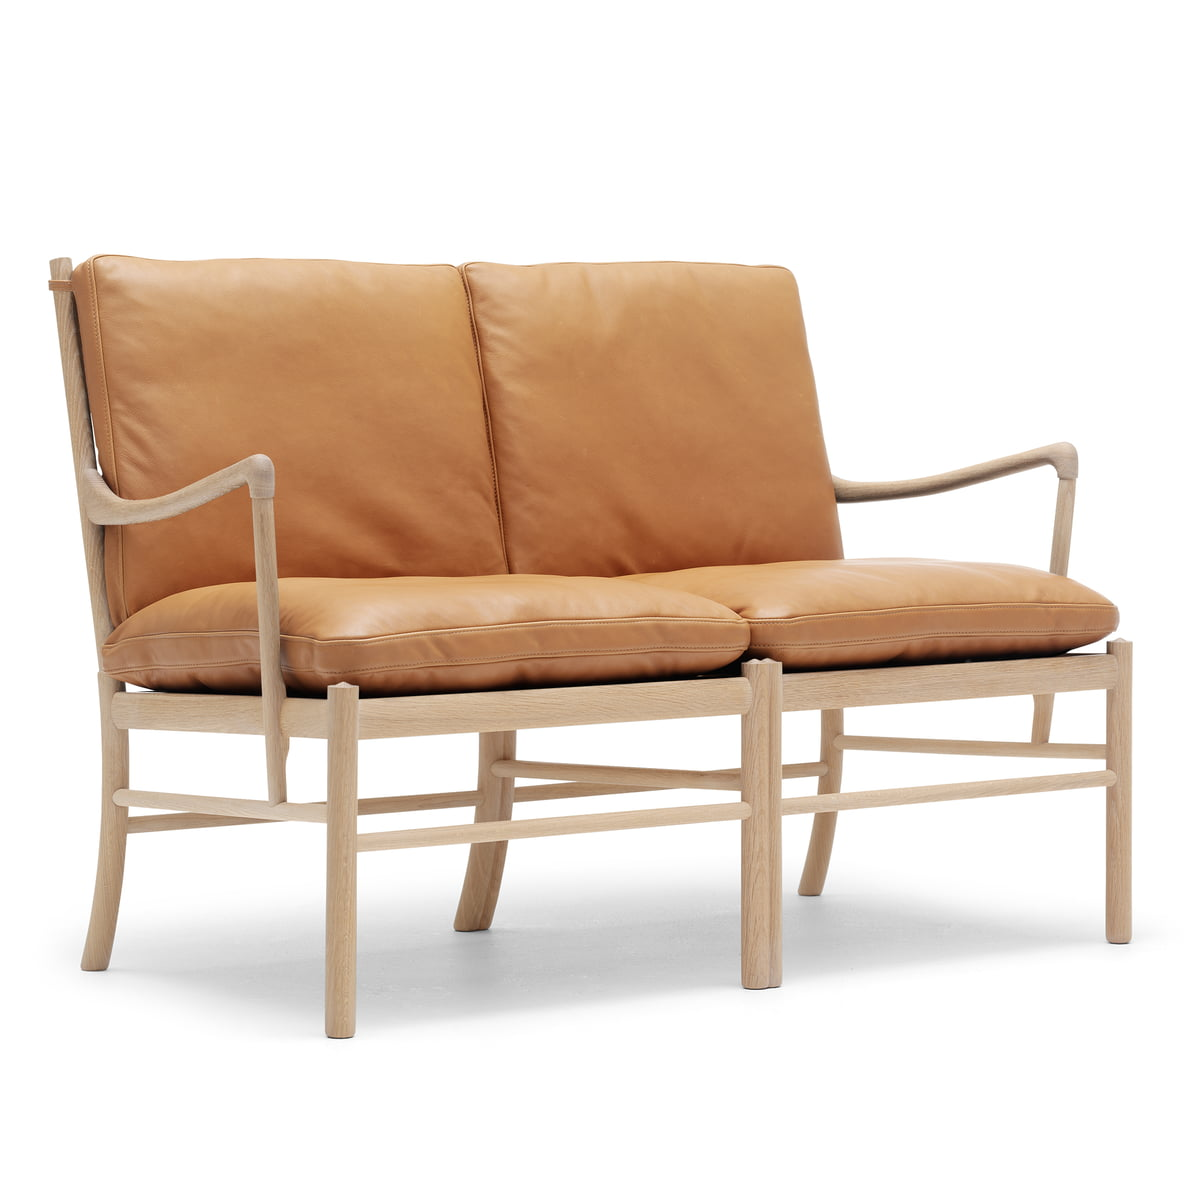 107 Best Images About Period Colonial Room Settings On: OW149 Colonial Sofa By Carl Hansen In The Shop